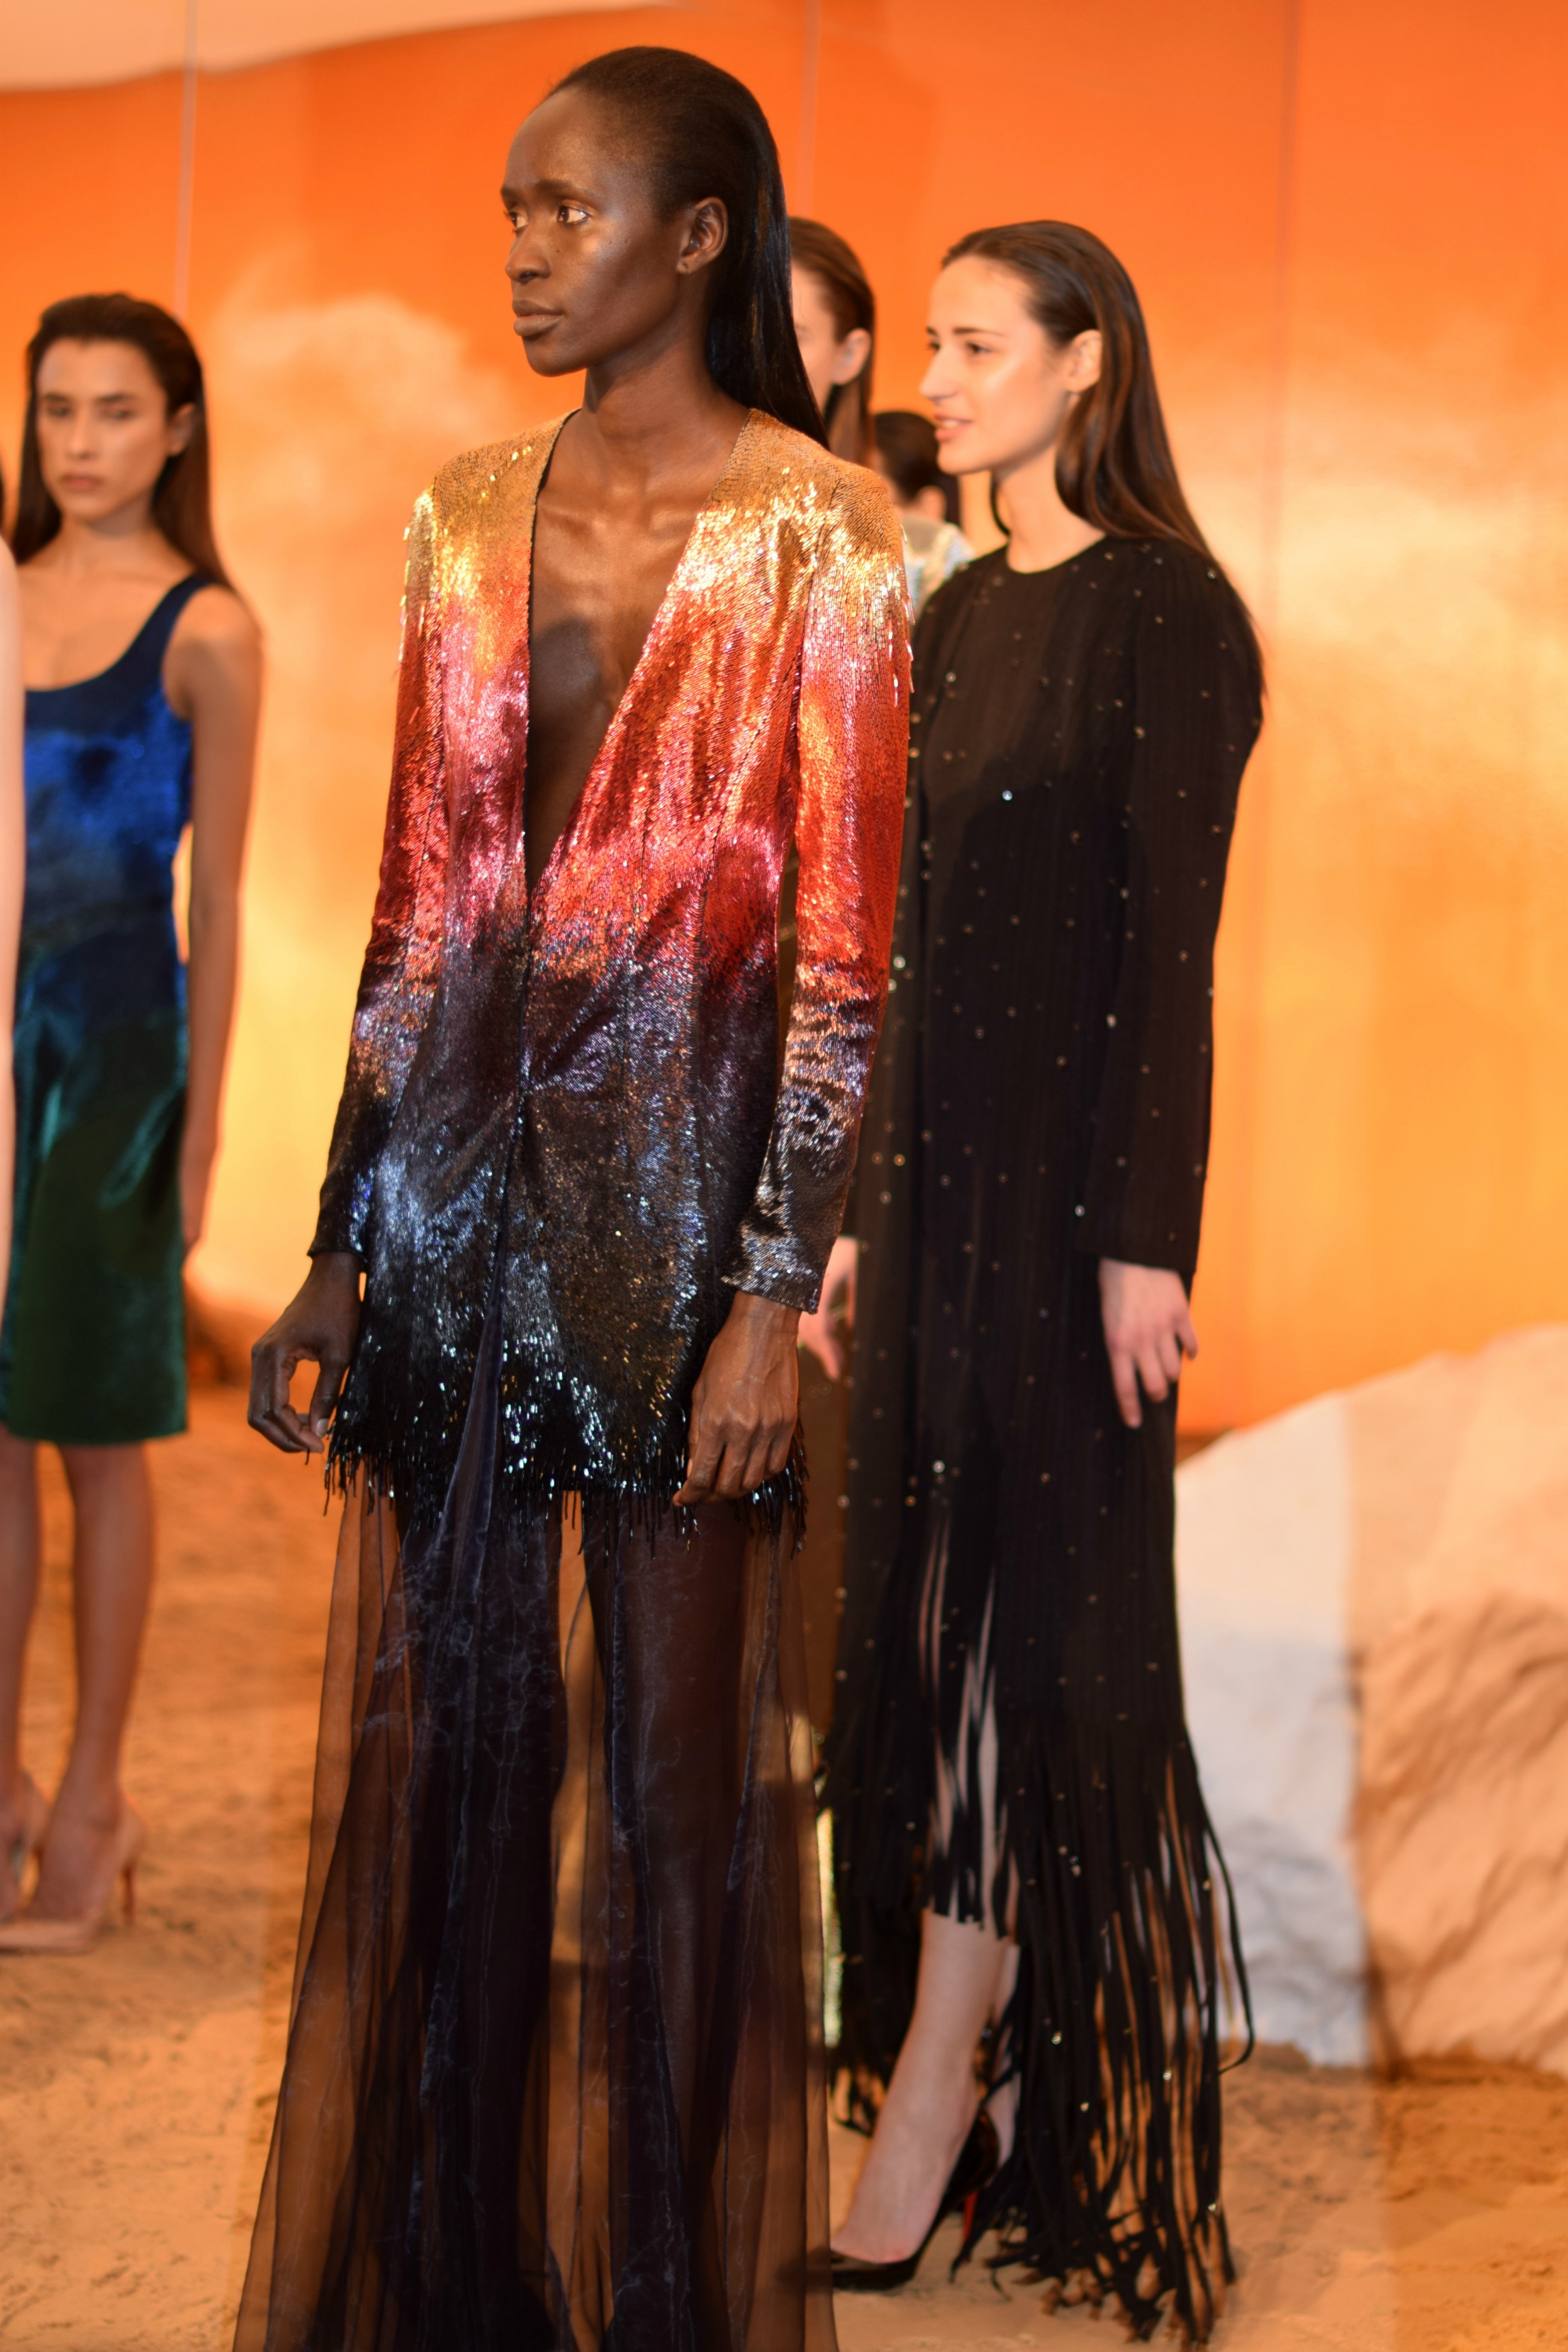 NYFW Mathieu Mirano Fashion Presentation Fall:Winter 2016 Louboutins & Love Fashion Blog Esther Santer NYC Street Style Models Collection Hair Makeup Dress Pretty Fringe TrendsGreen Gown Metallic Gold Silver Inspo Press Event Coverage Details Photos.jpg